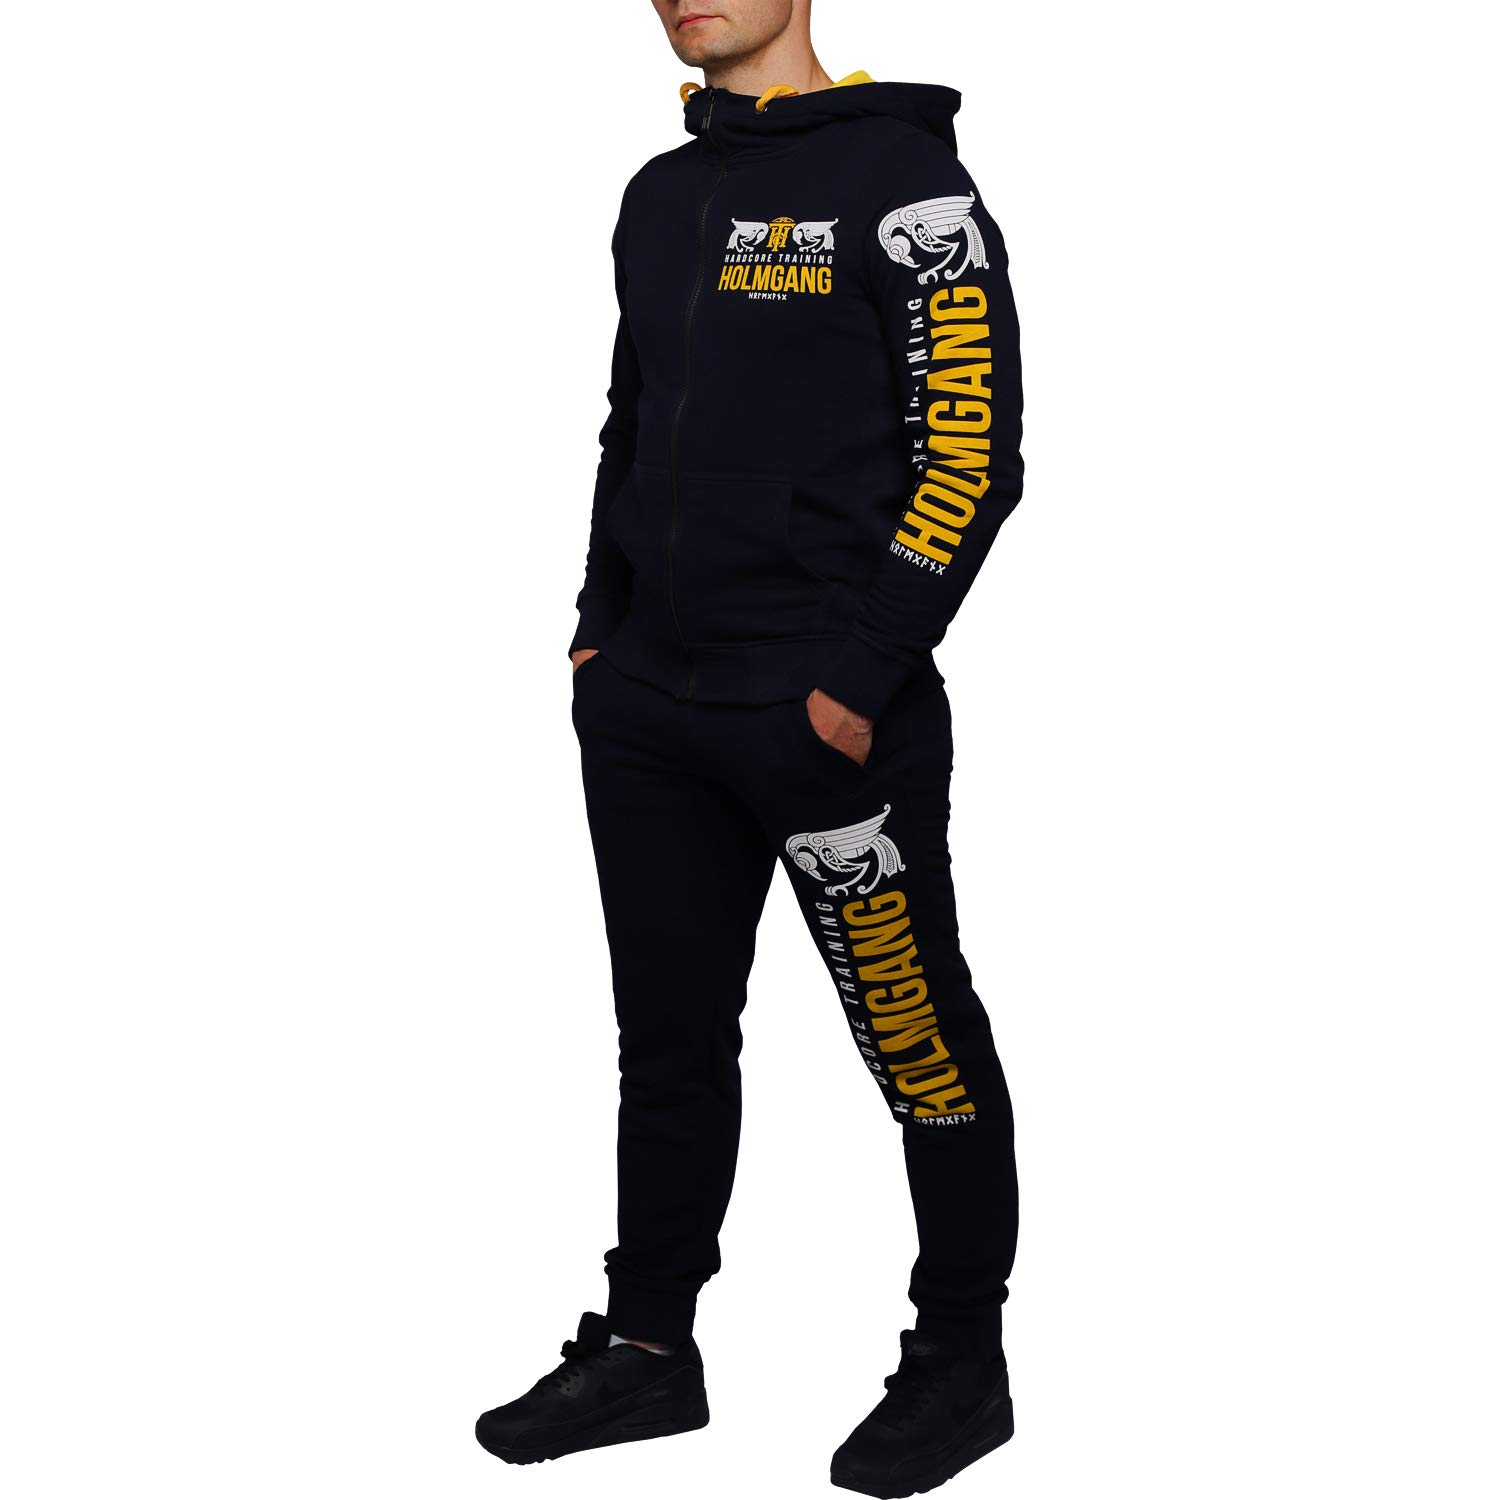 Hardcore Training Hoodie Mens Holmgang Workout Fitness Active Sportwear Capucha Sudadera Hombre